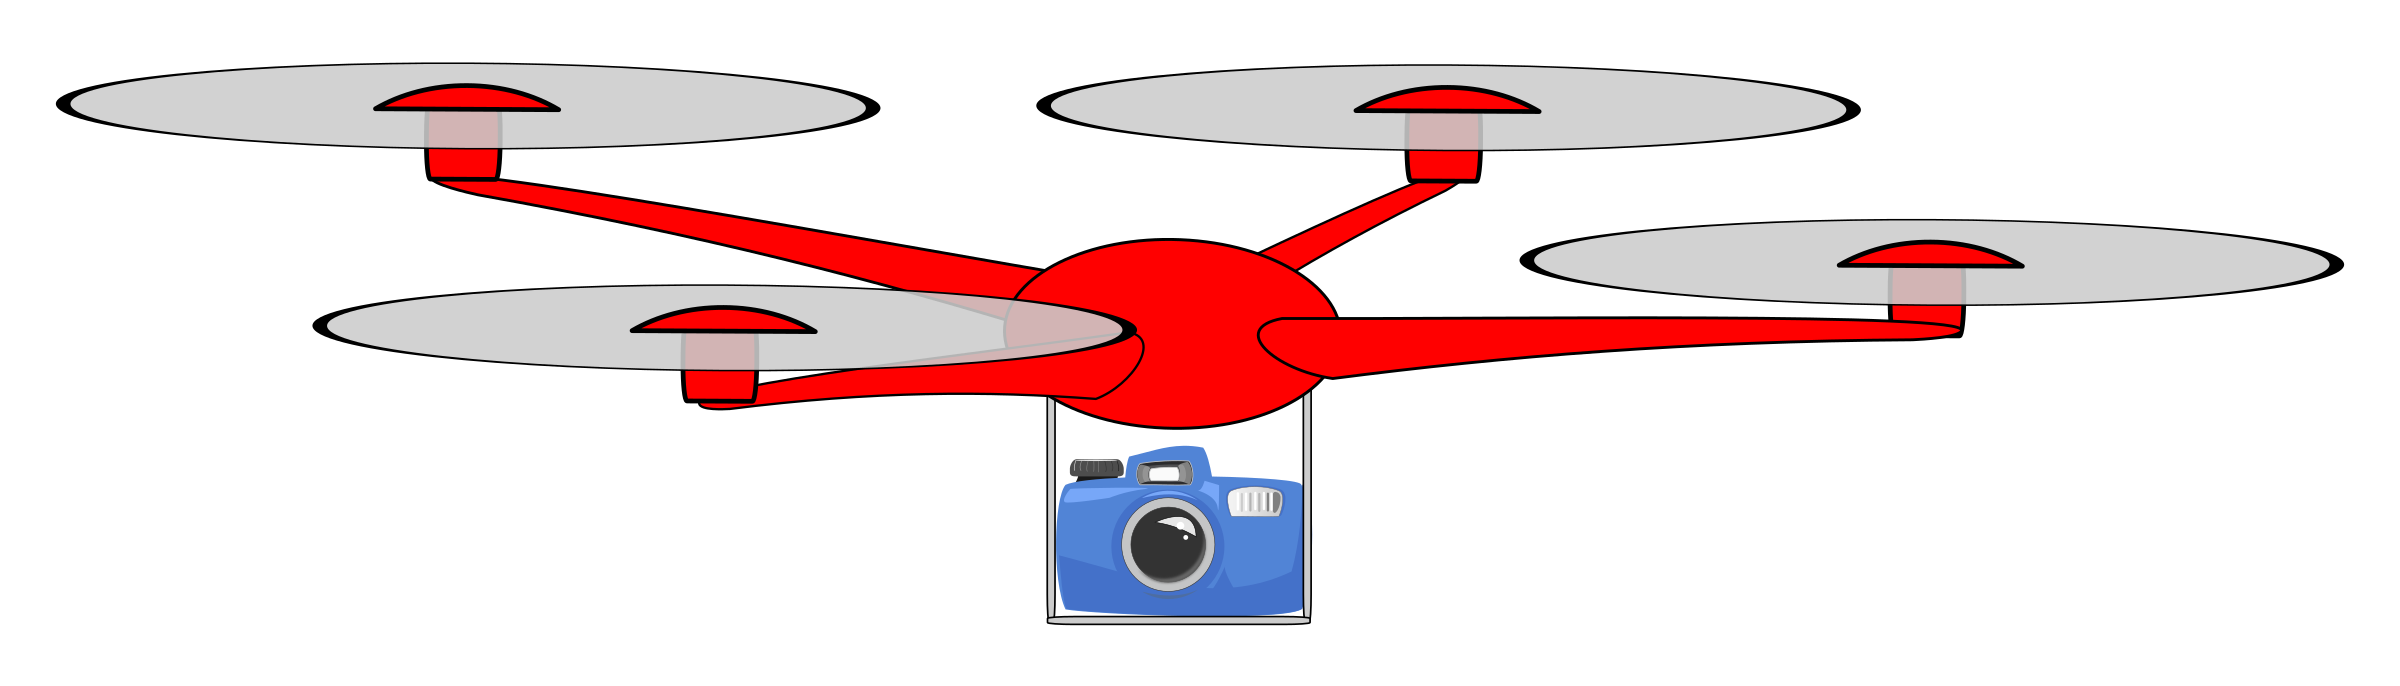 Simple drone with camera by Juhele